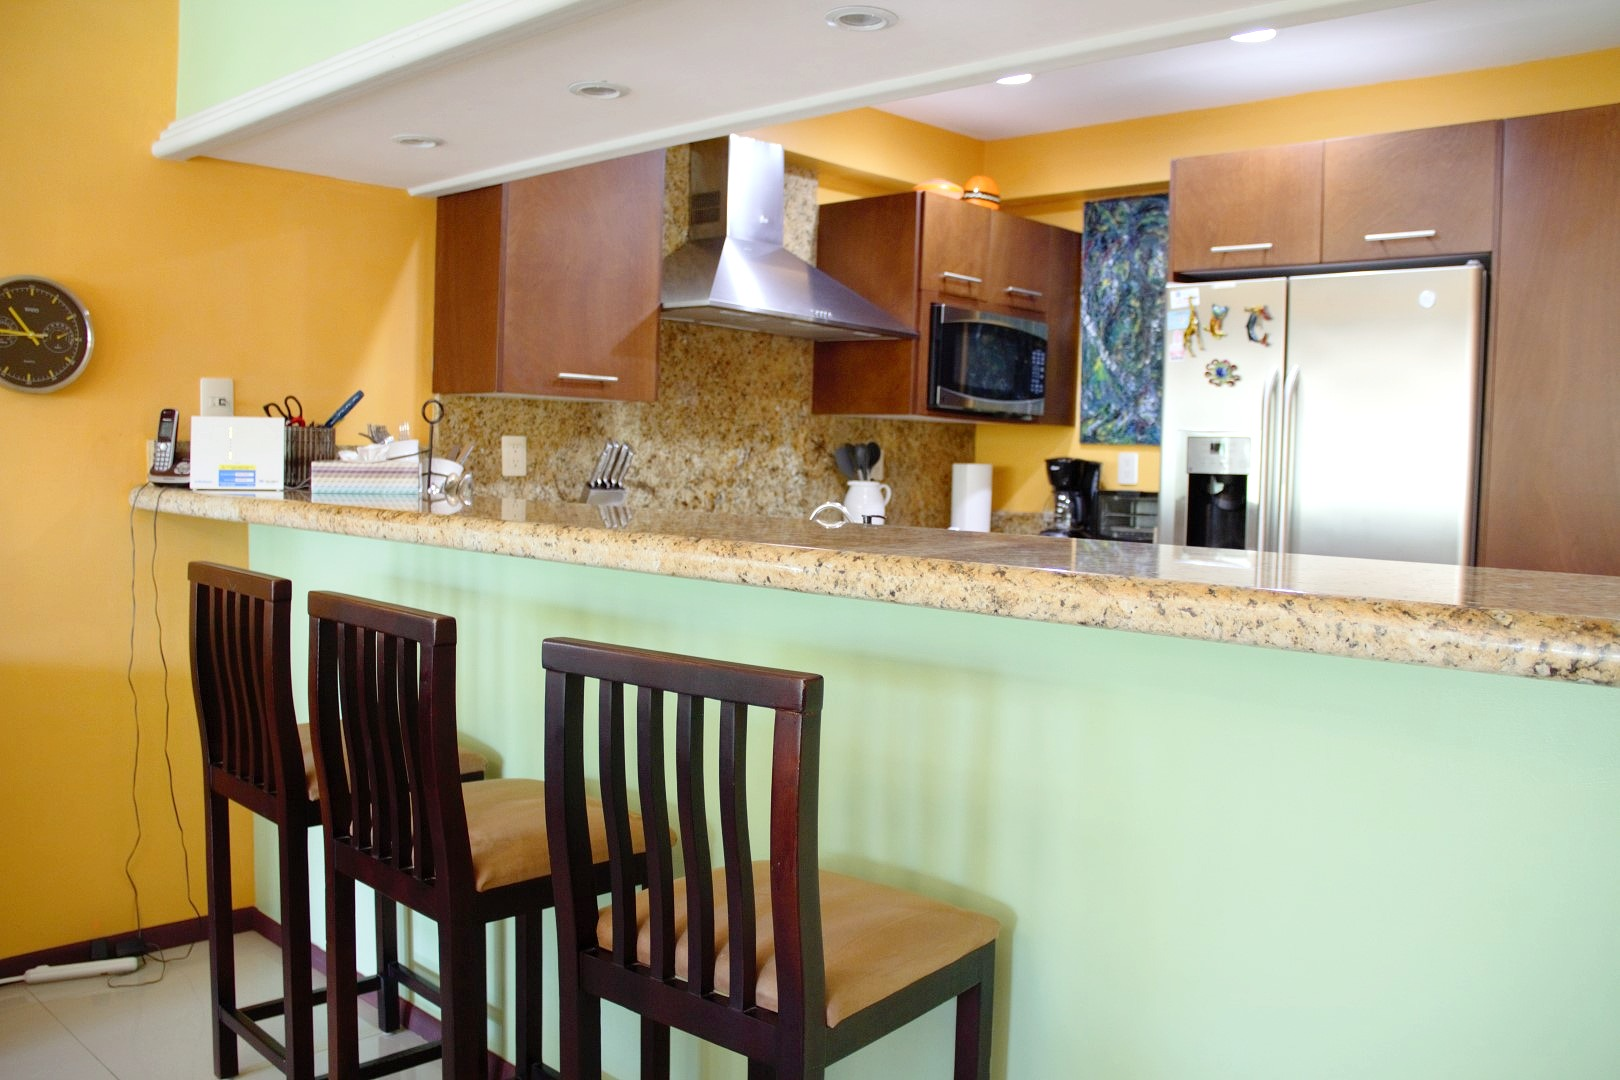 Breakfast bar with seating for 3 people.